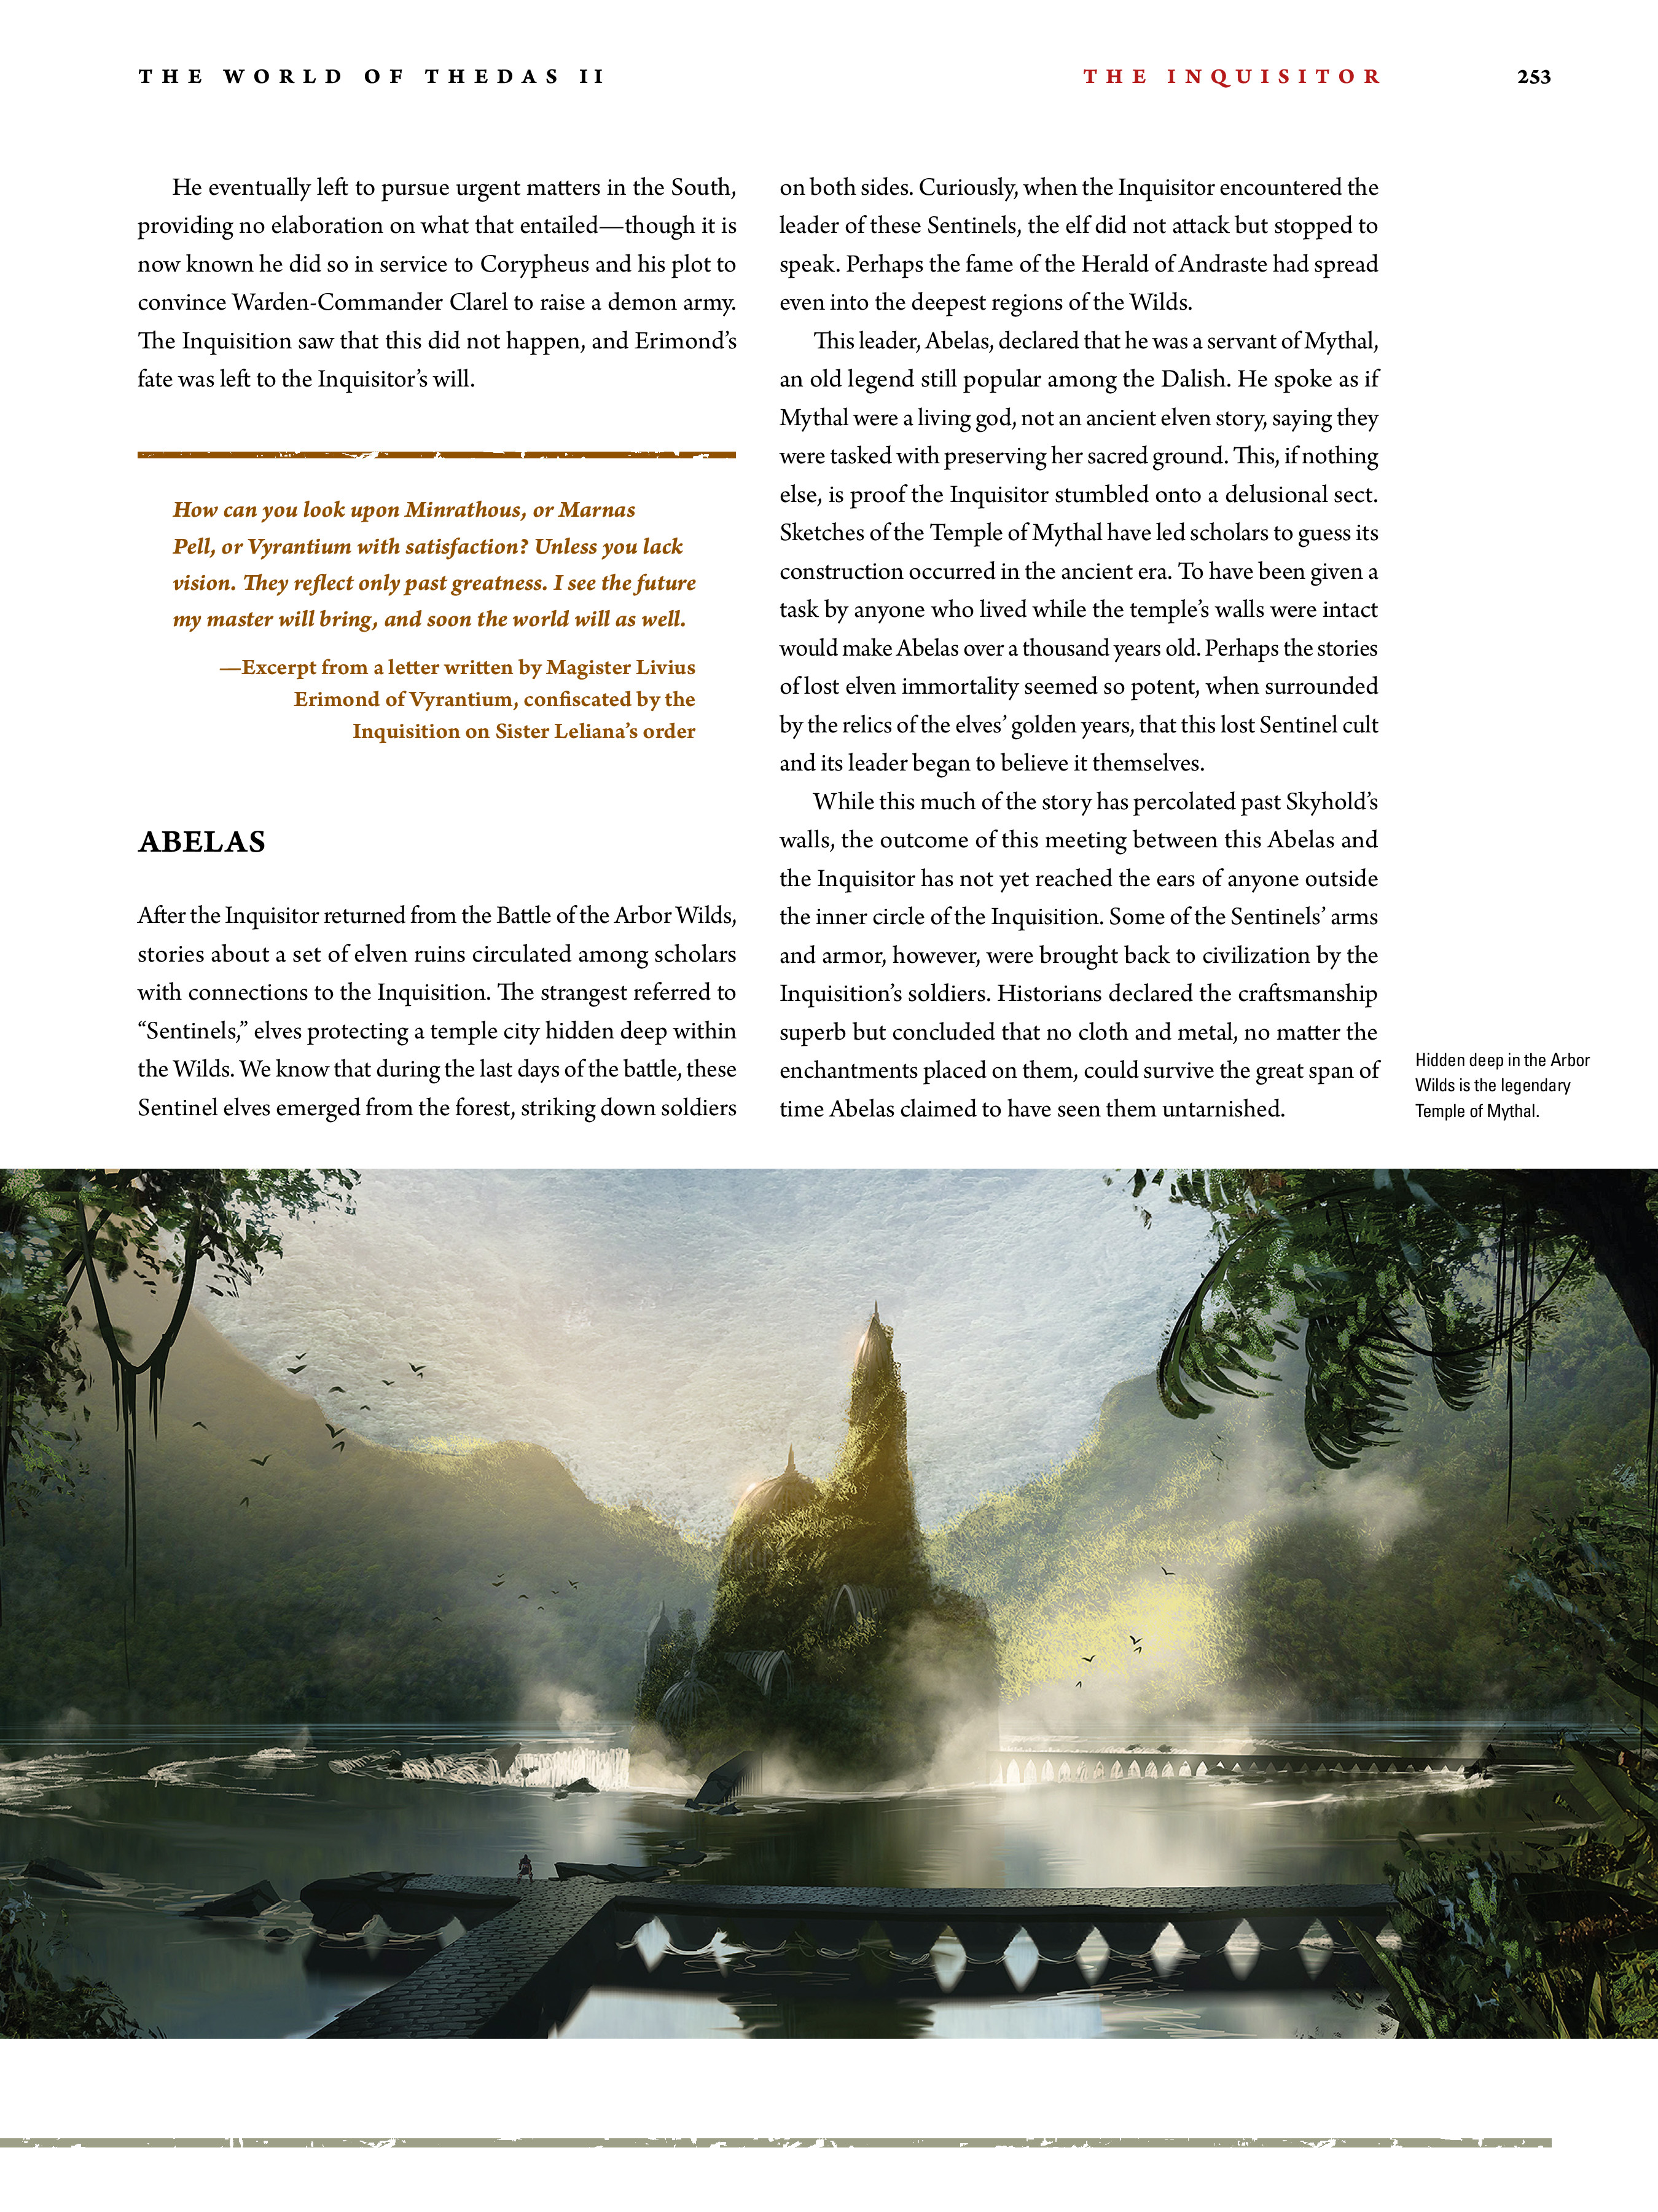 Read online Dragon Age: The World of Thedas comic -  Issue # TPB 2 - 246